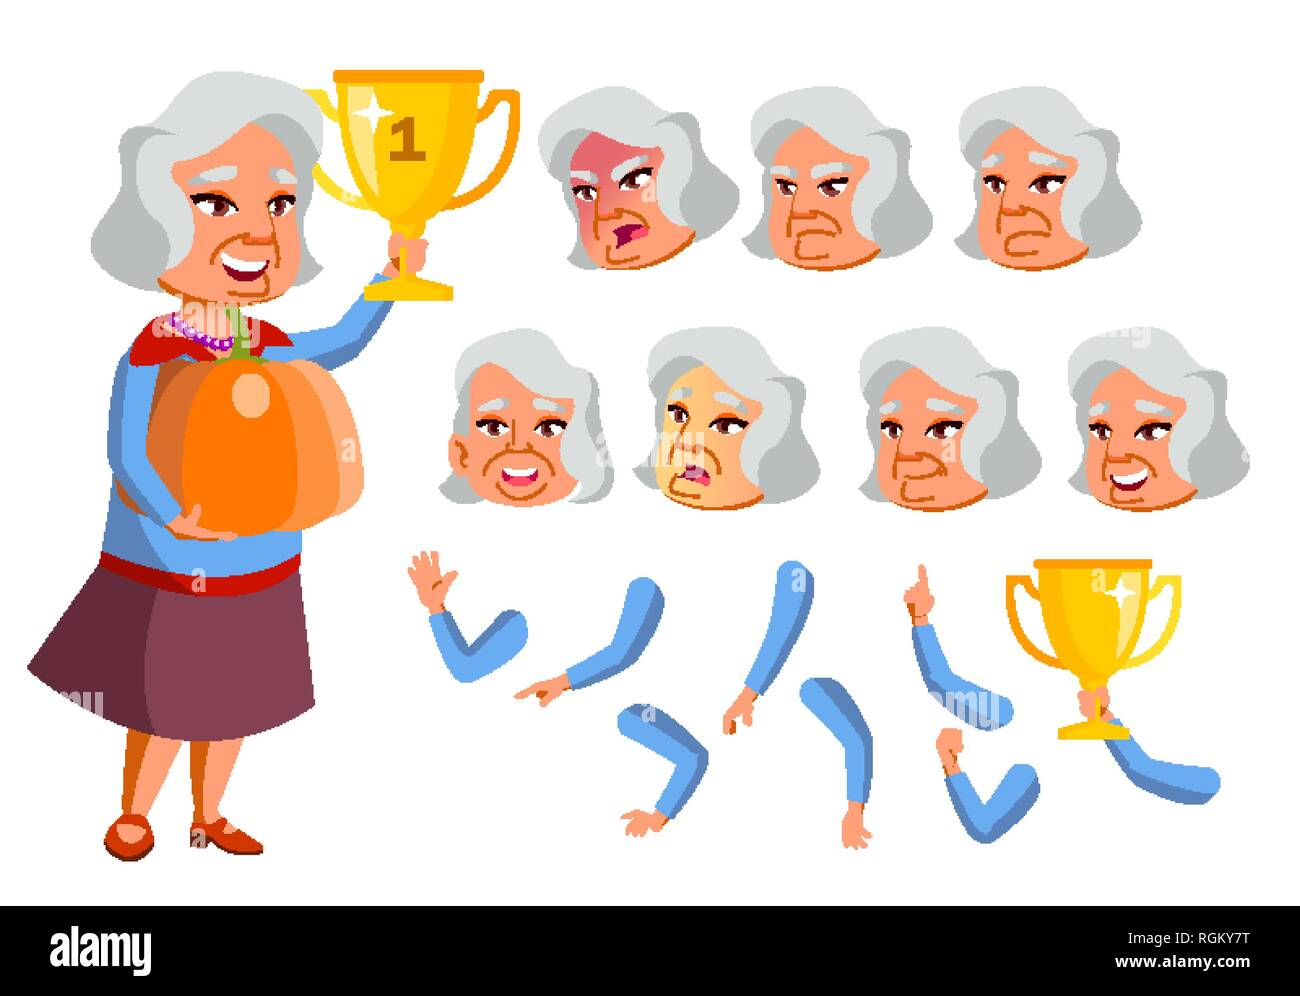 Old Vietnamese Woman Cut Out Stock Images & Pictures - Alamy